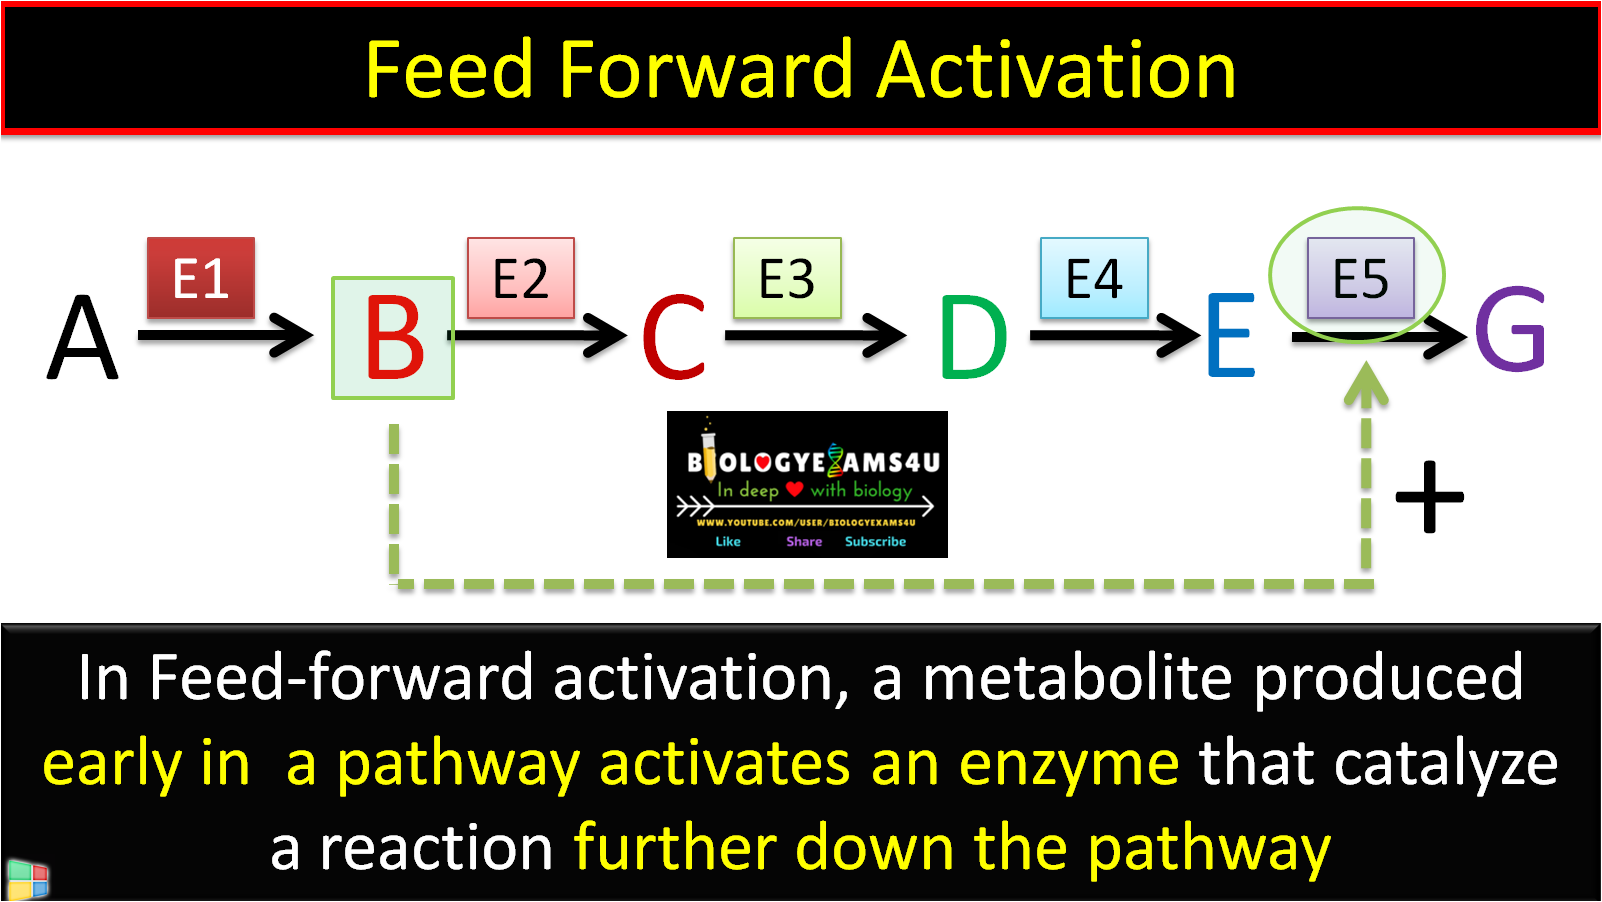 feed forward activation of enzymes